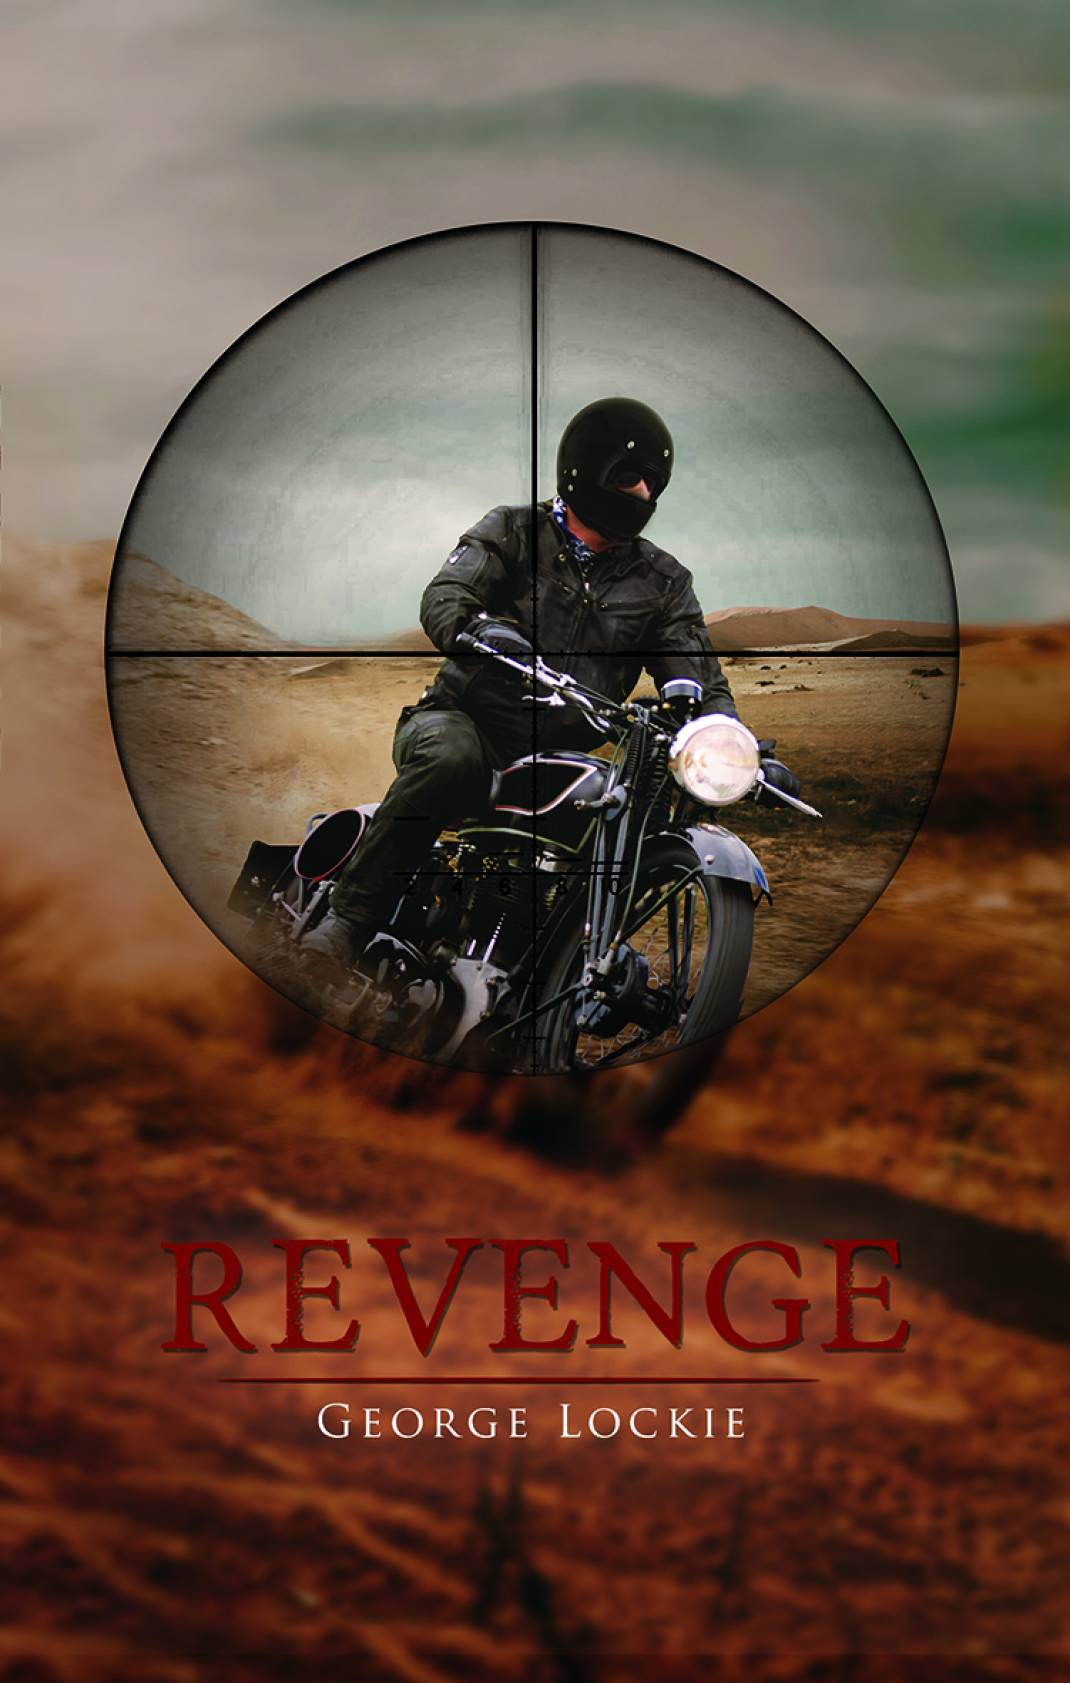 Revenge by George Lockie